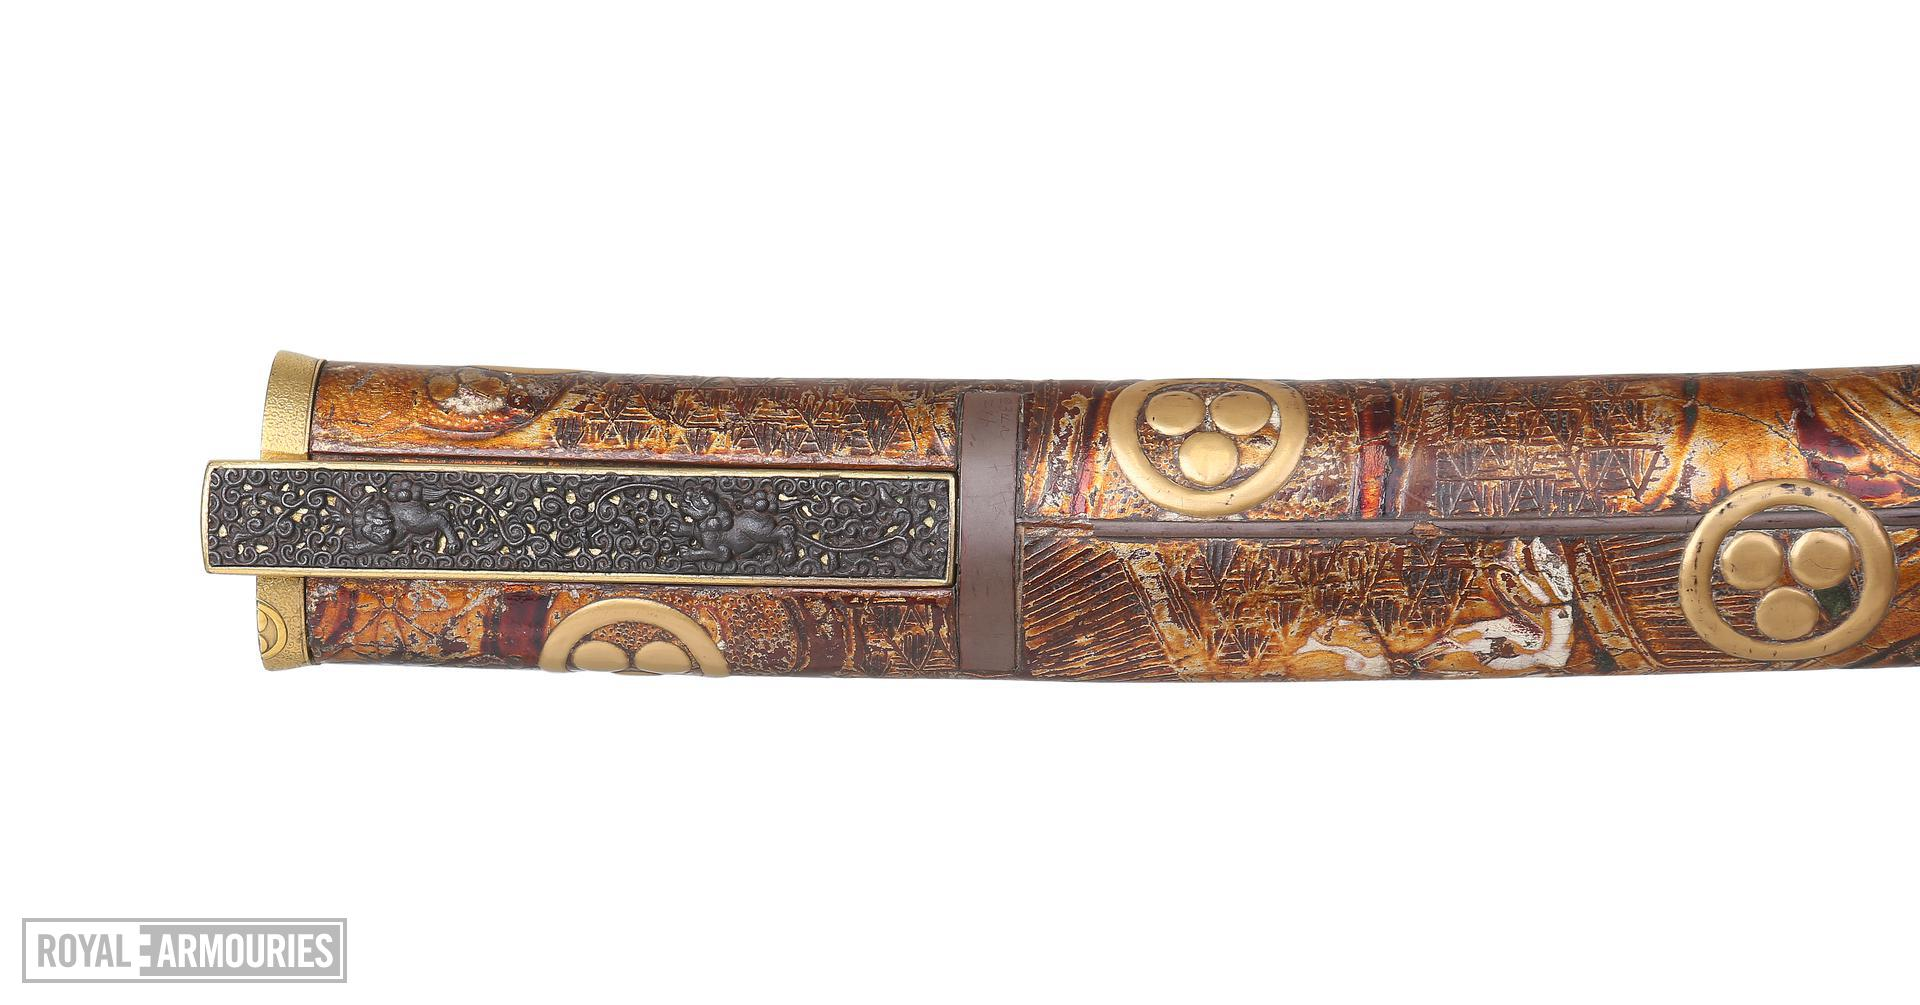 Dagger (aikuchi). Japanese, late 17th century, with a German blade, dated 1625